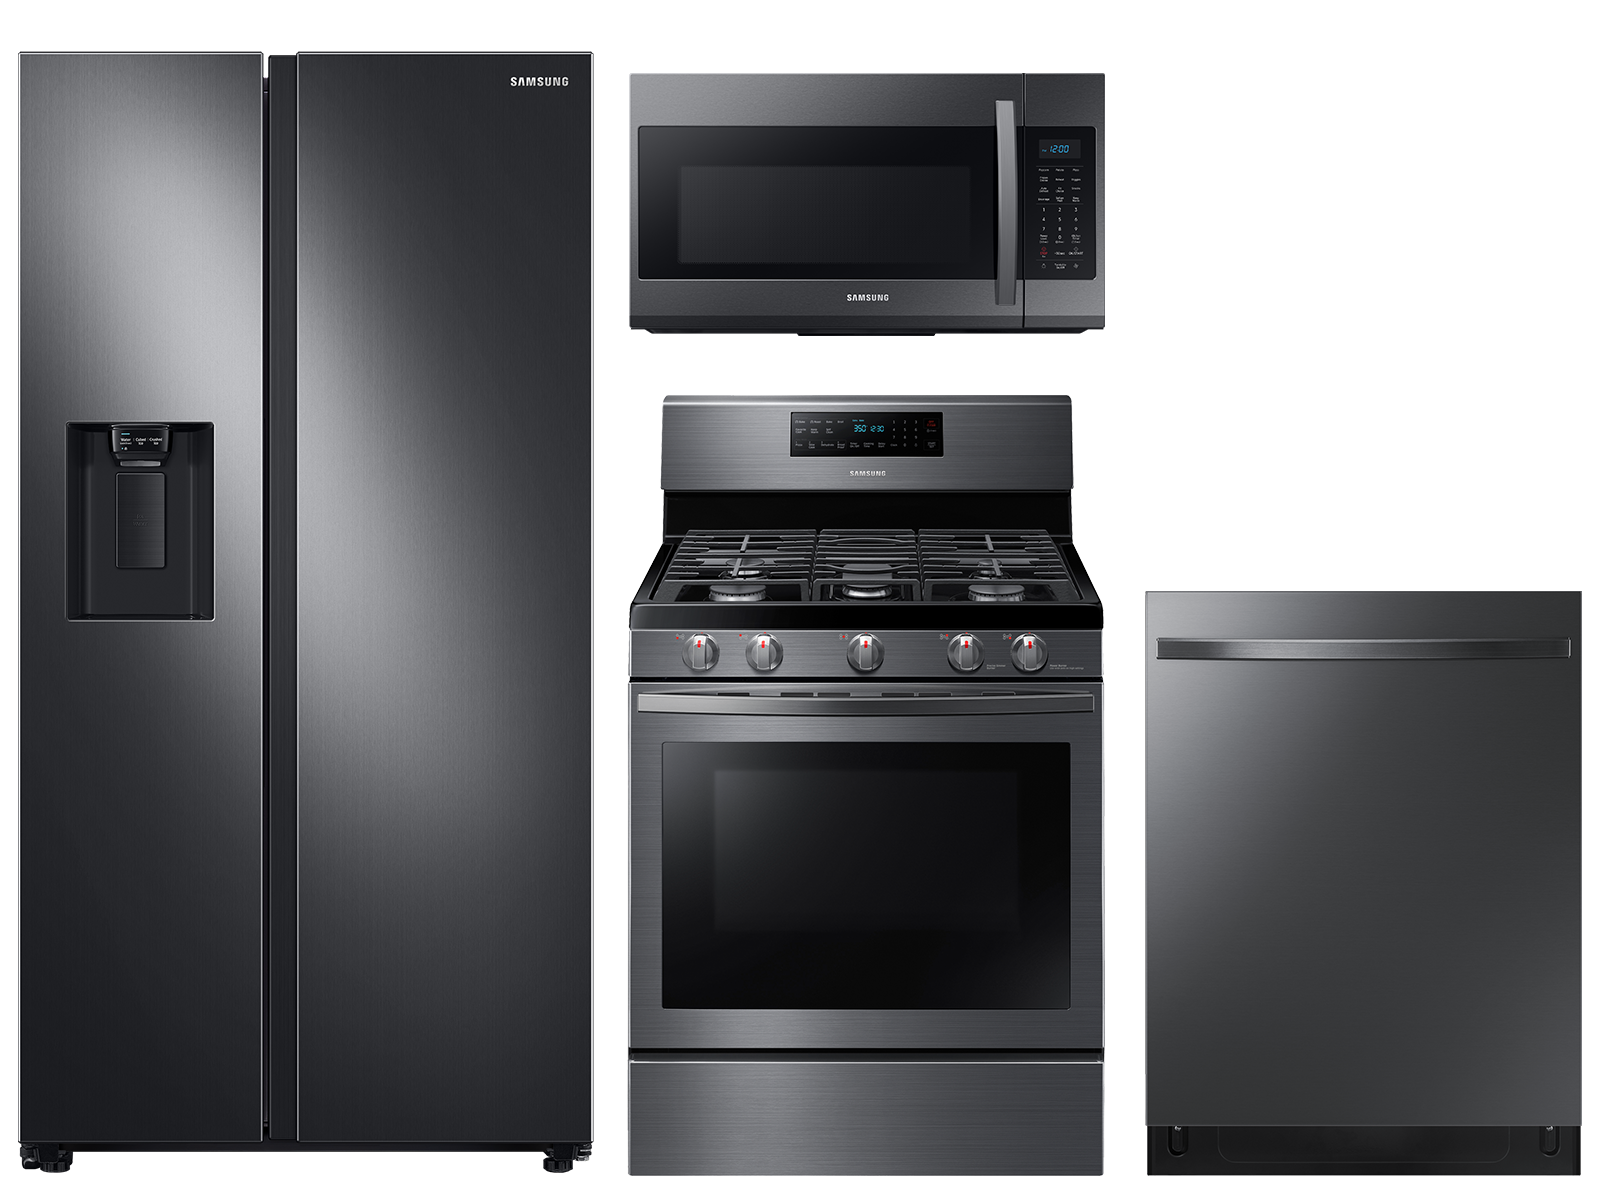 Samsung Counter Depth Side-by-Side refrigerator & gas range package in black stainless